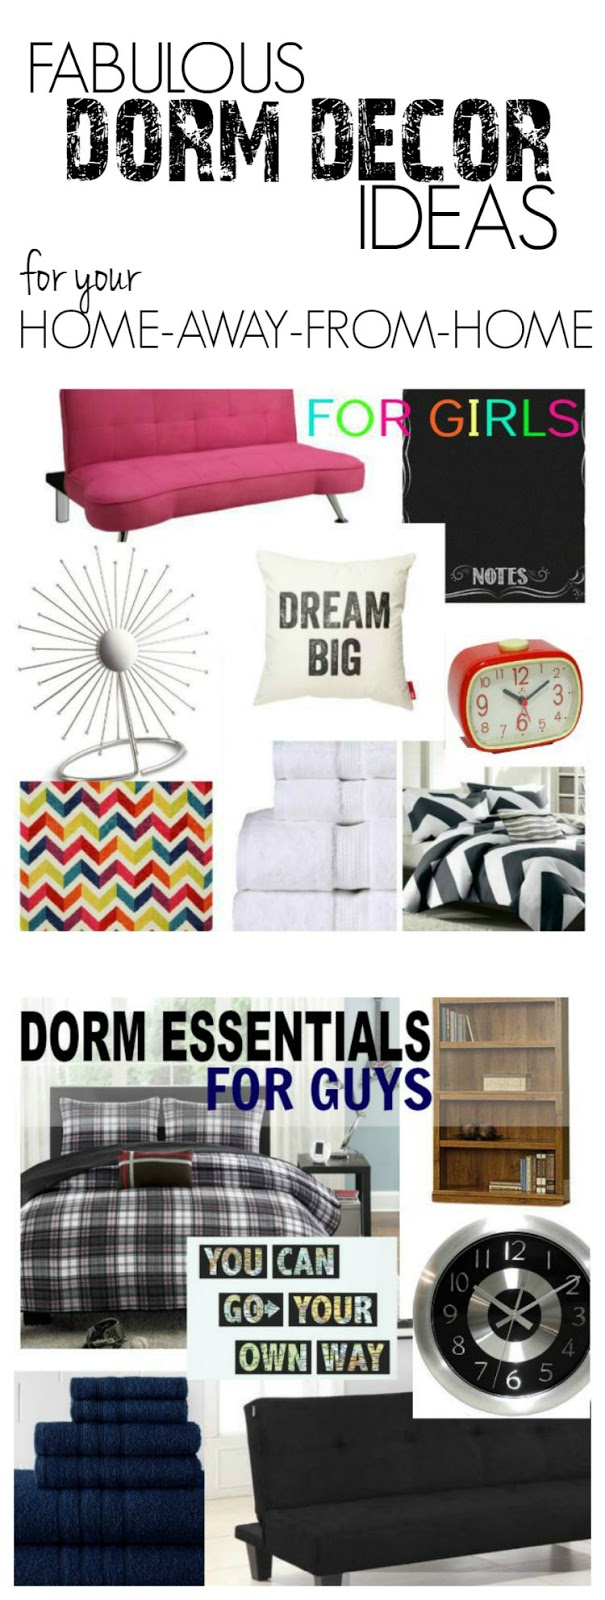 Inspiration and ideas for back to school College living in the dorm!